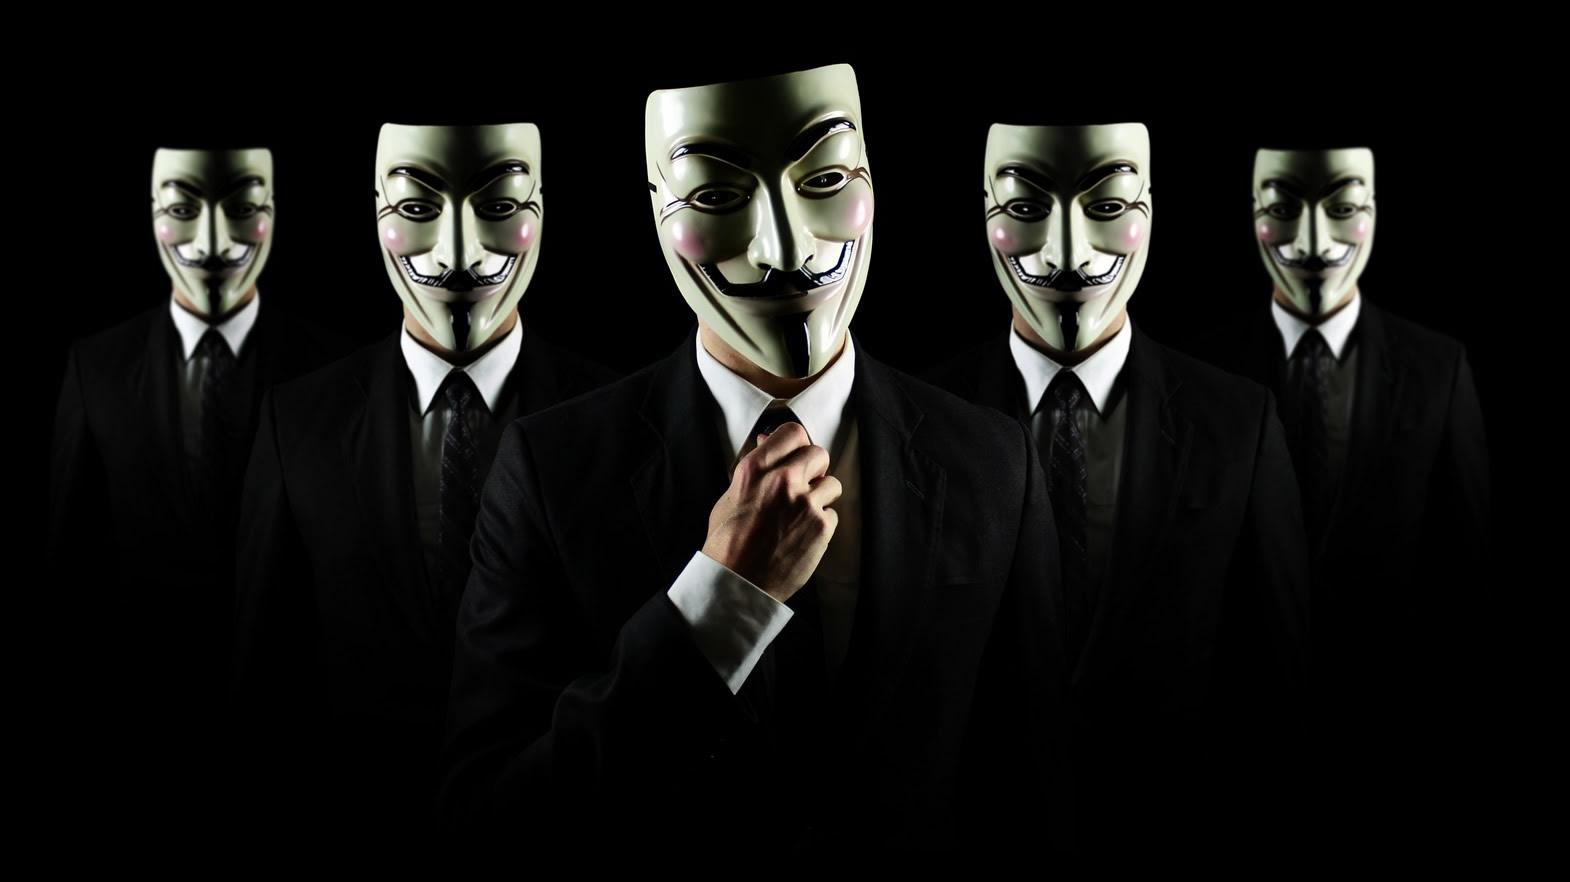 anonymous-anon-face.jpg